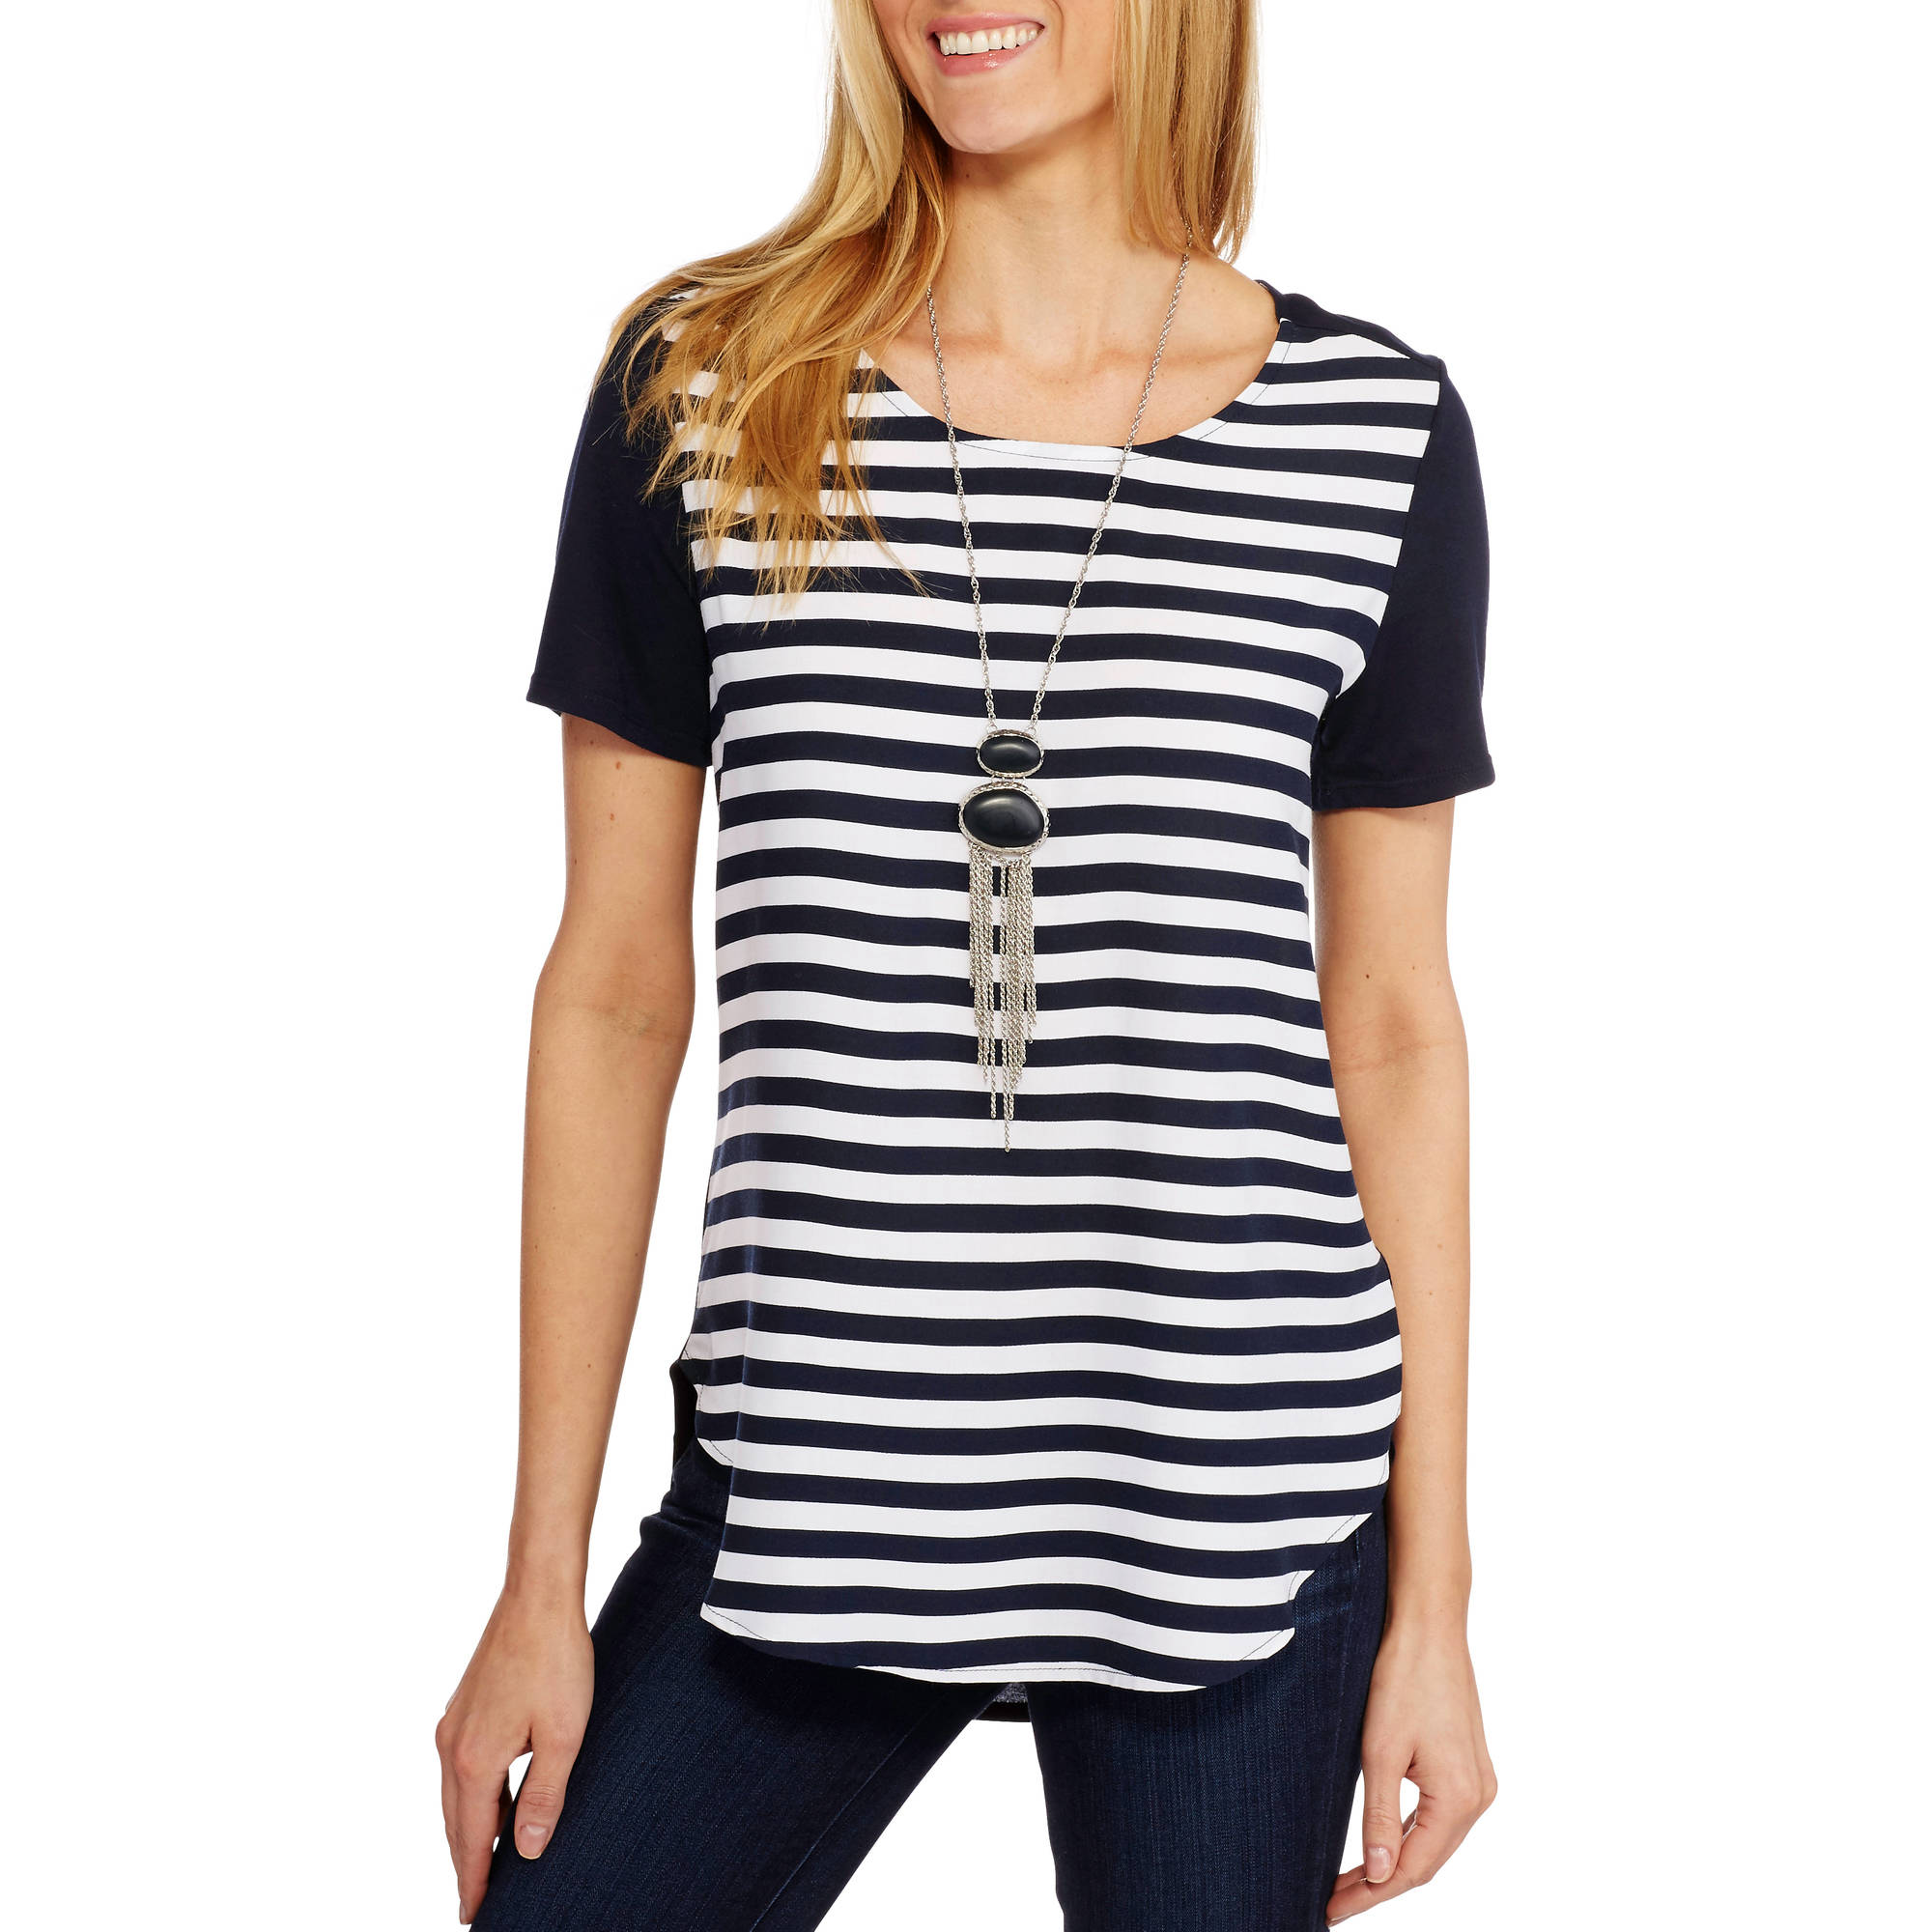 Faded Glory Women's Woven Tunic With Stretch Knit Back